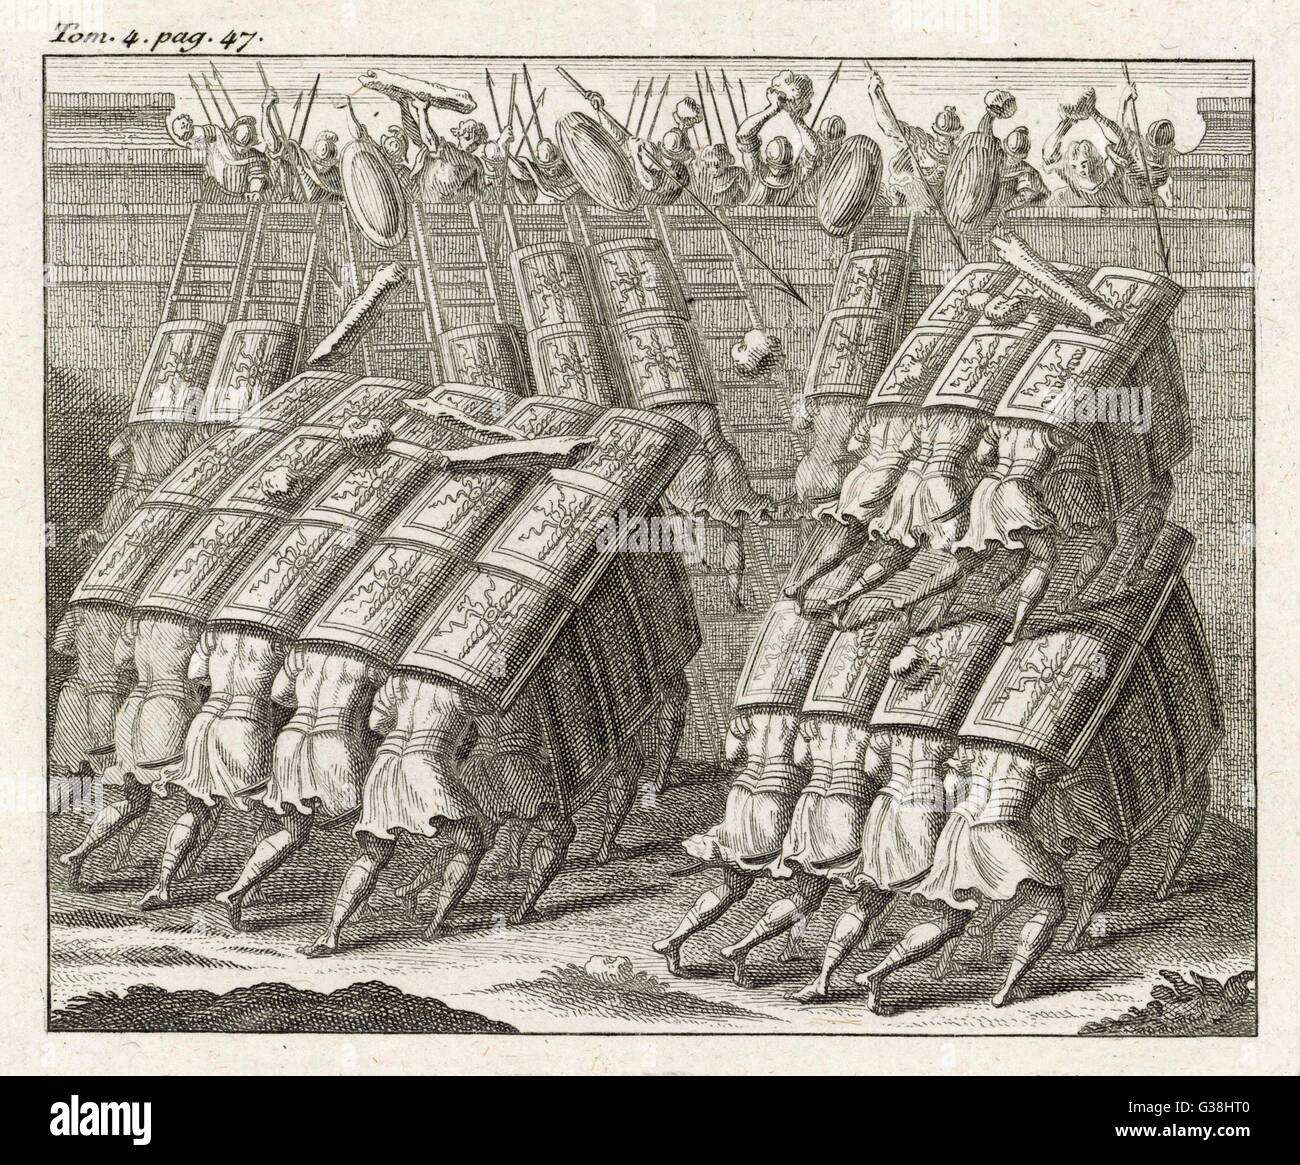 The TESTUDO (tortoise), a  Roman siege technique using overlapping shields, giving protection from arrows and  boiling - Stock Image